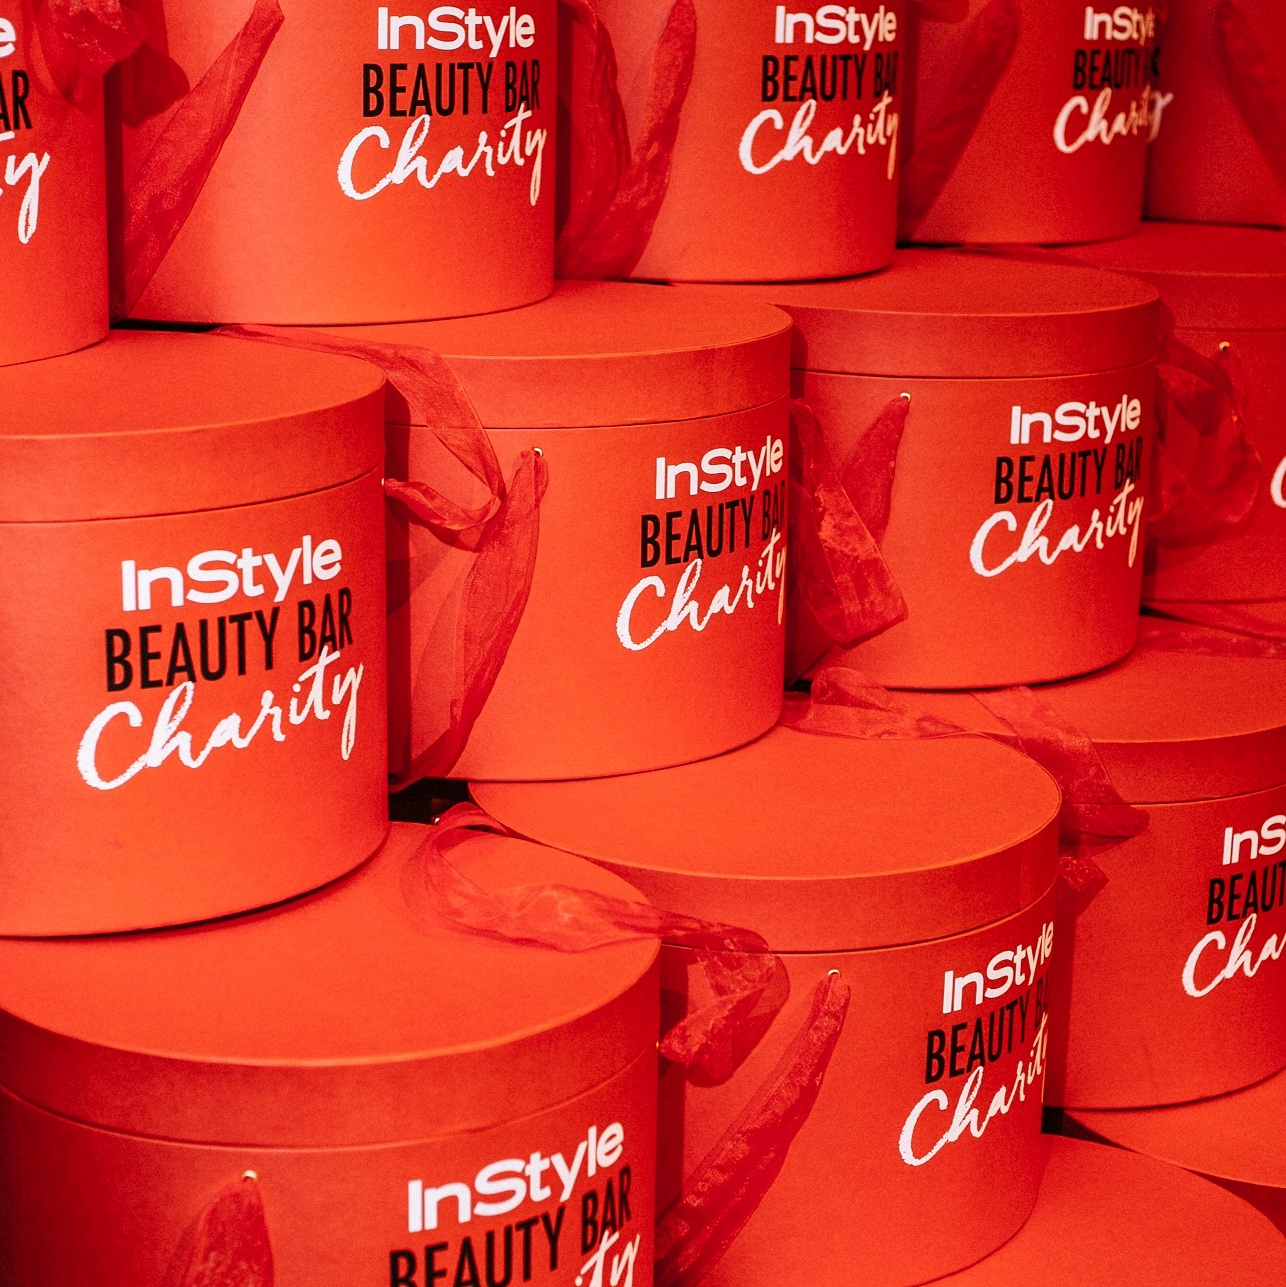 Instyle Beauty Bar Charity-004